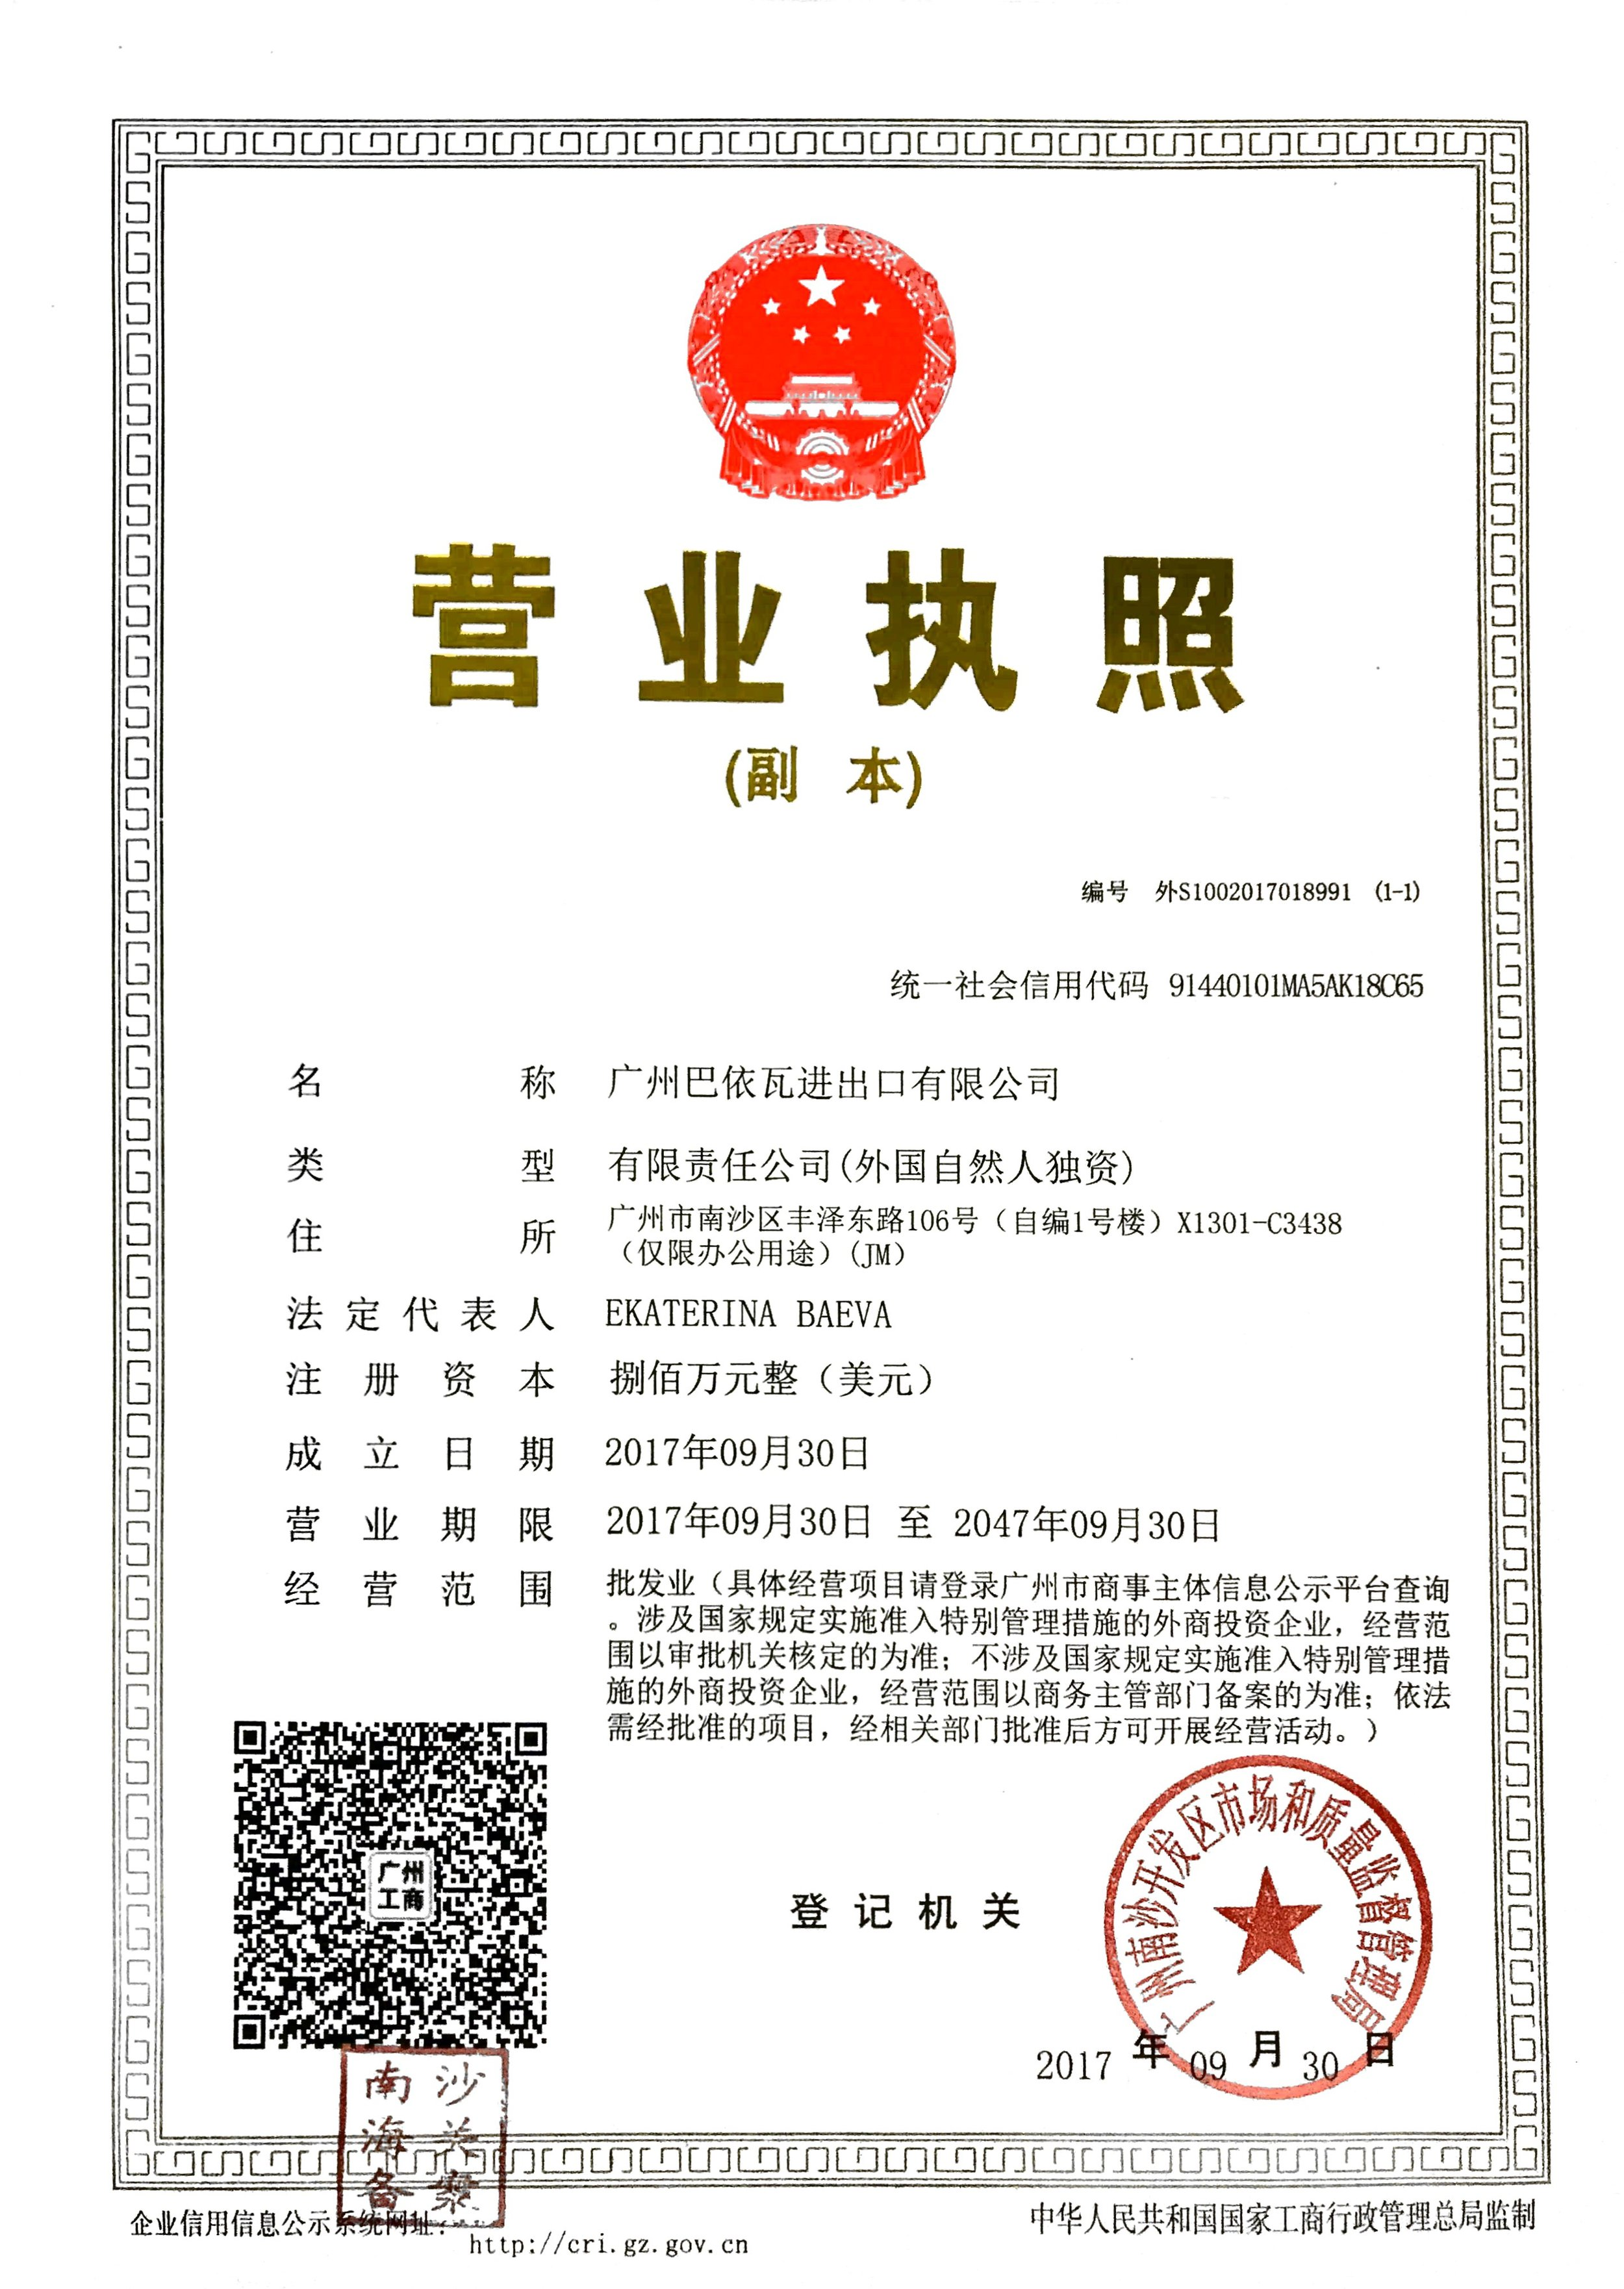 Official registered company in Guangzhou city. China.